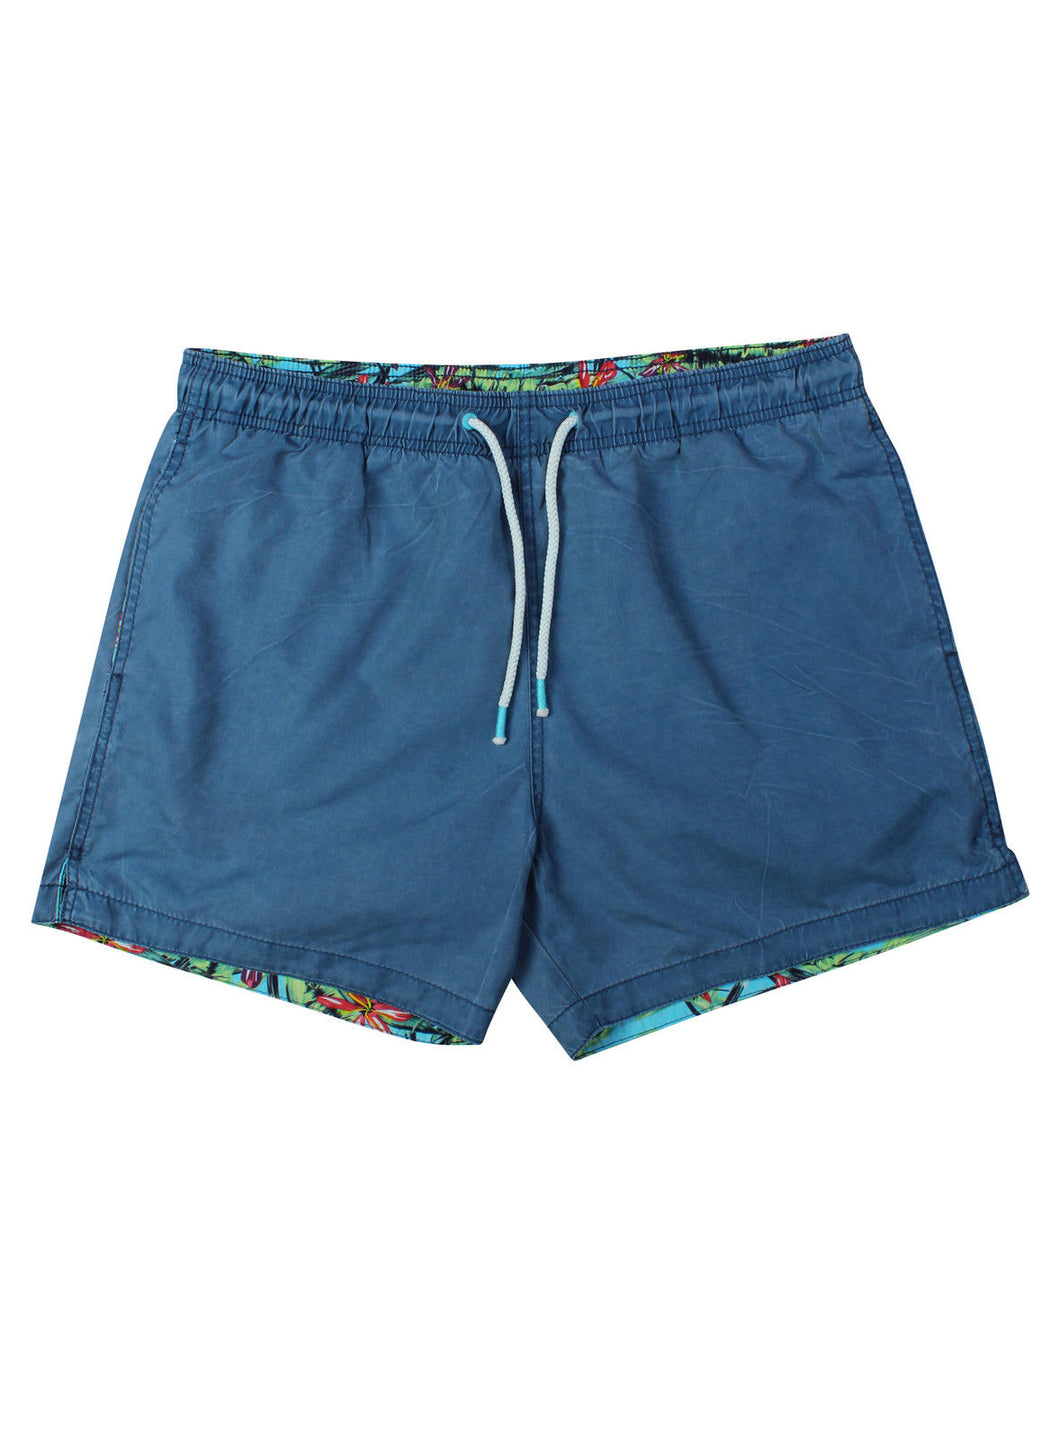 Ex H&M Mens Light Blue Print Swim Shorts Mesh Lining Size XS-XL